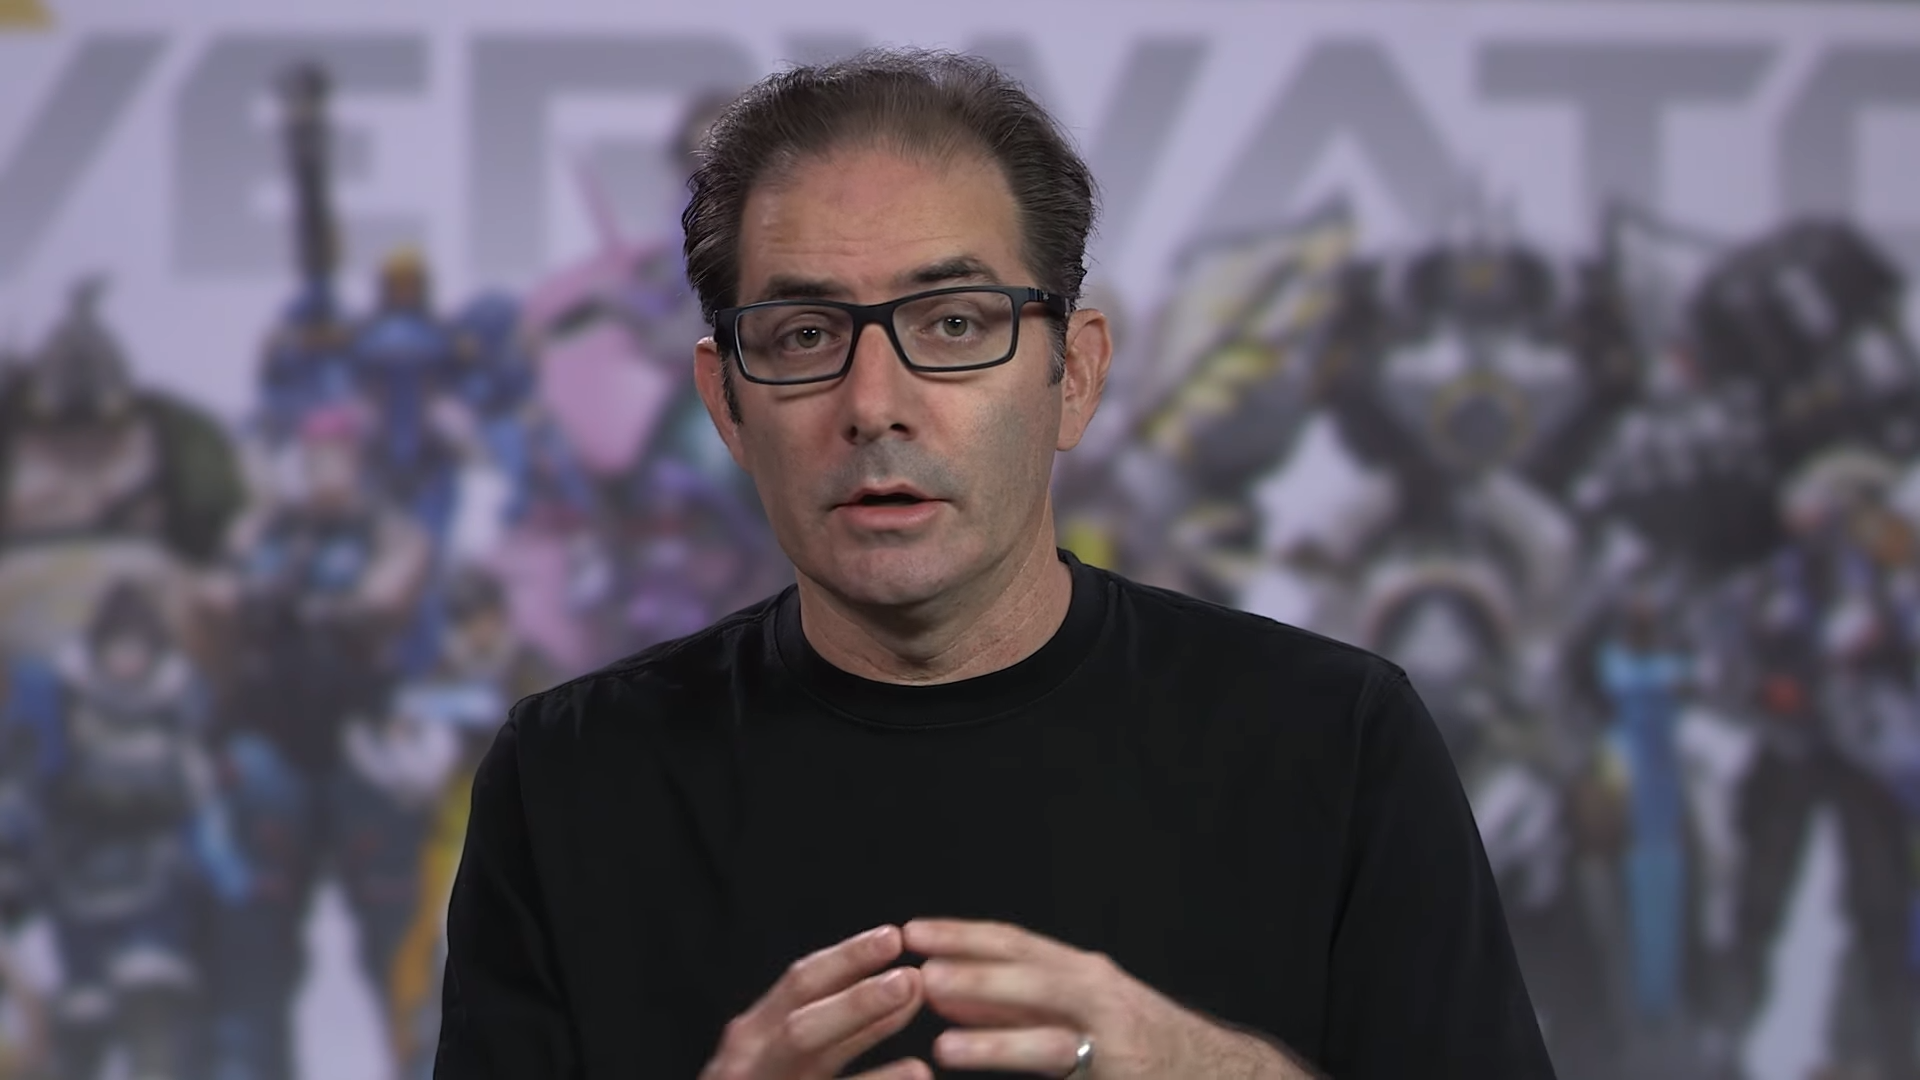 Overwatch Lead Jeff Kaplan Announces Departure From Blizzard